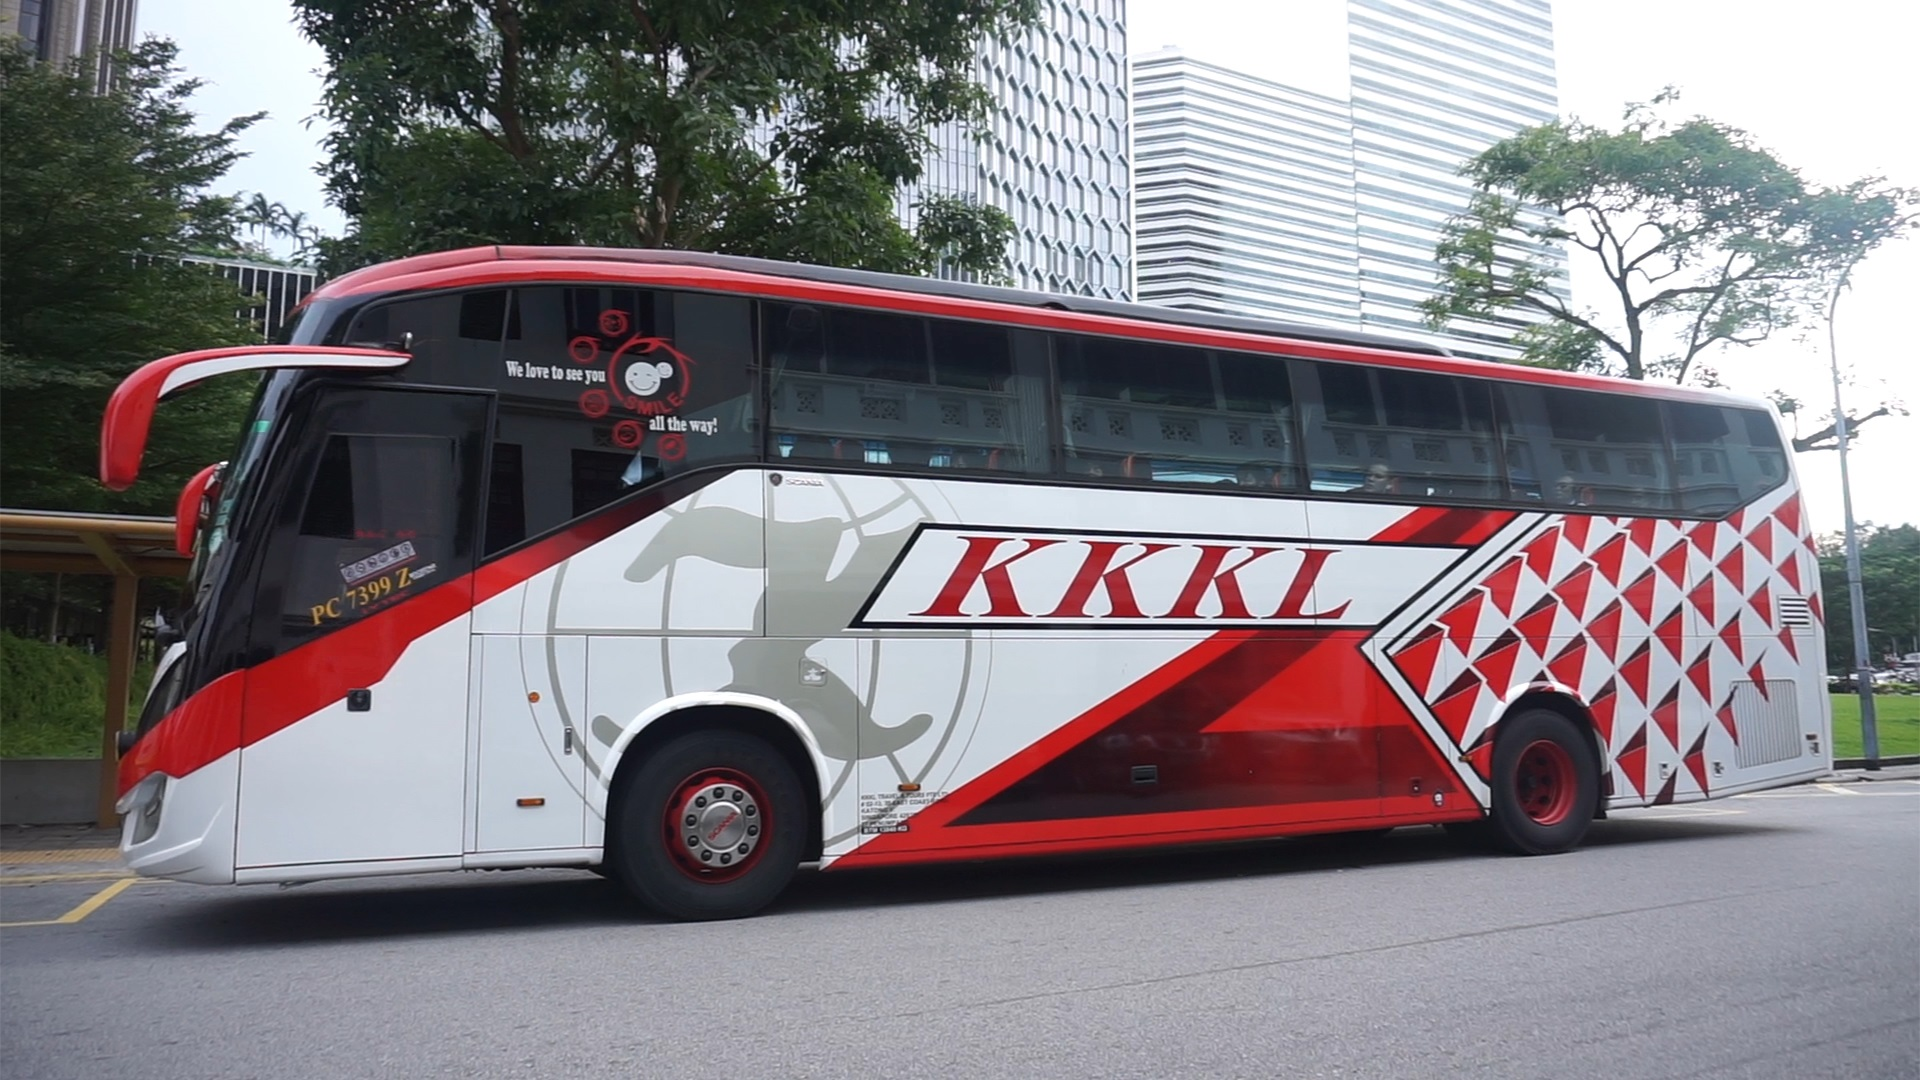 KKKL Travel & Tours